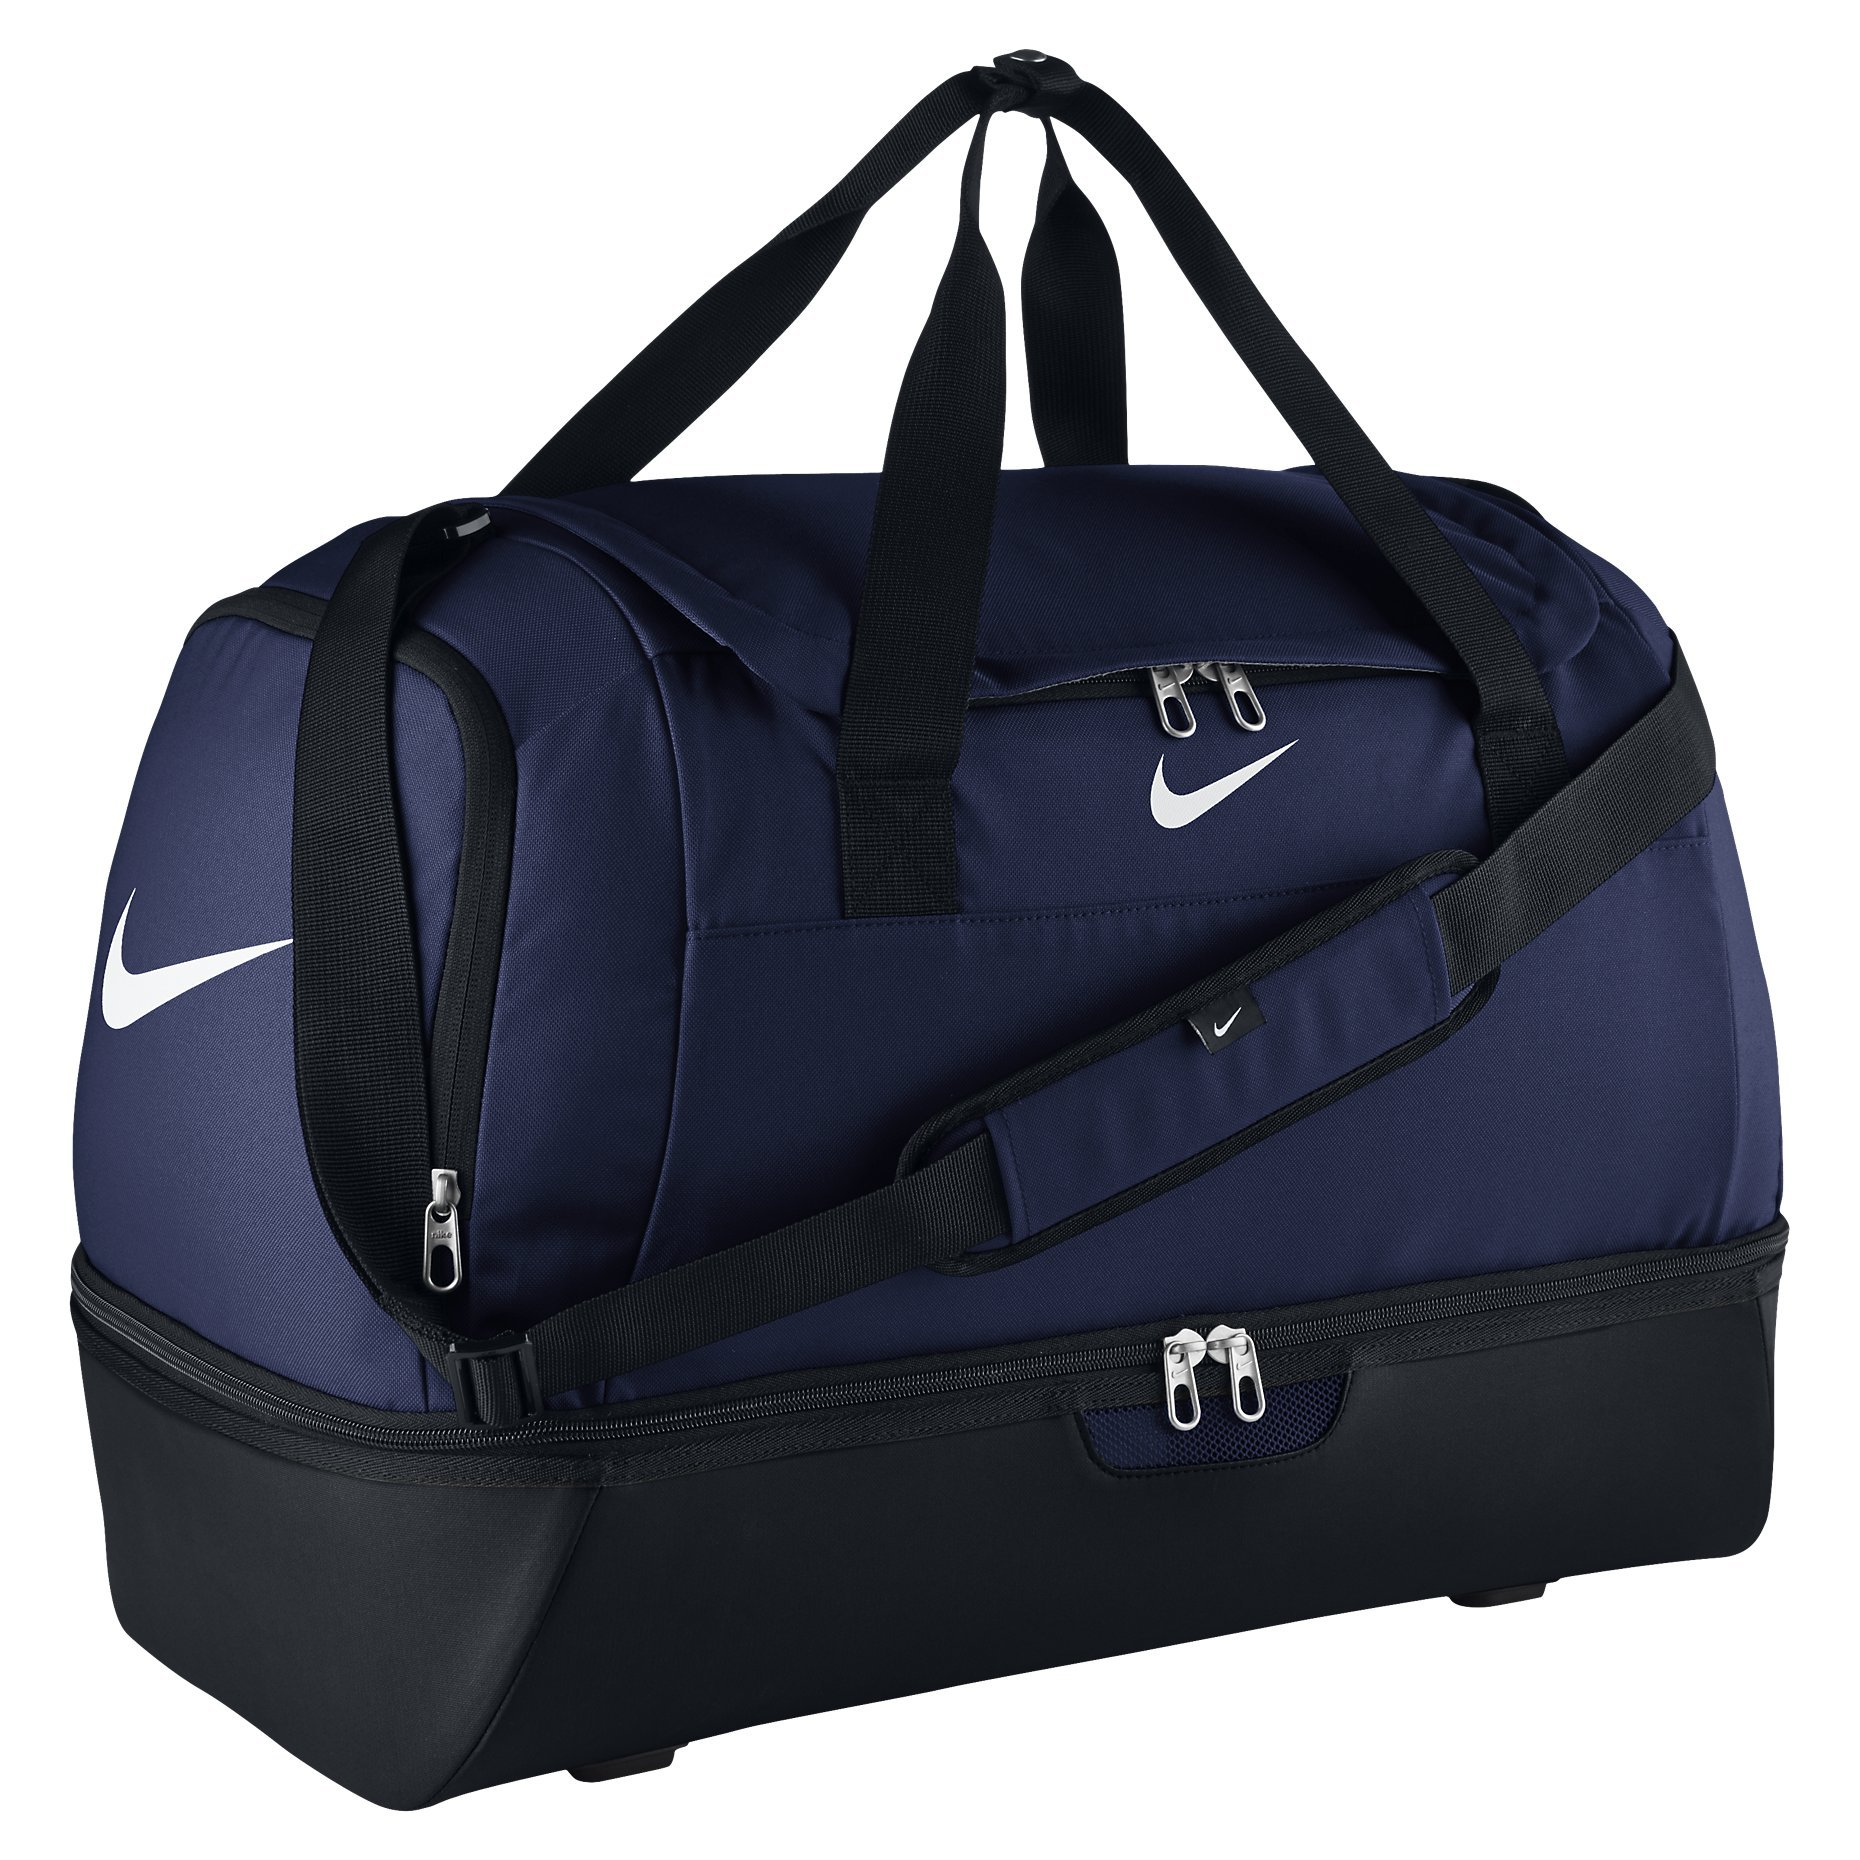 Taška Nike Club Team Swoosh Hardcase XL